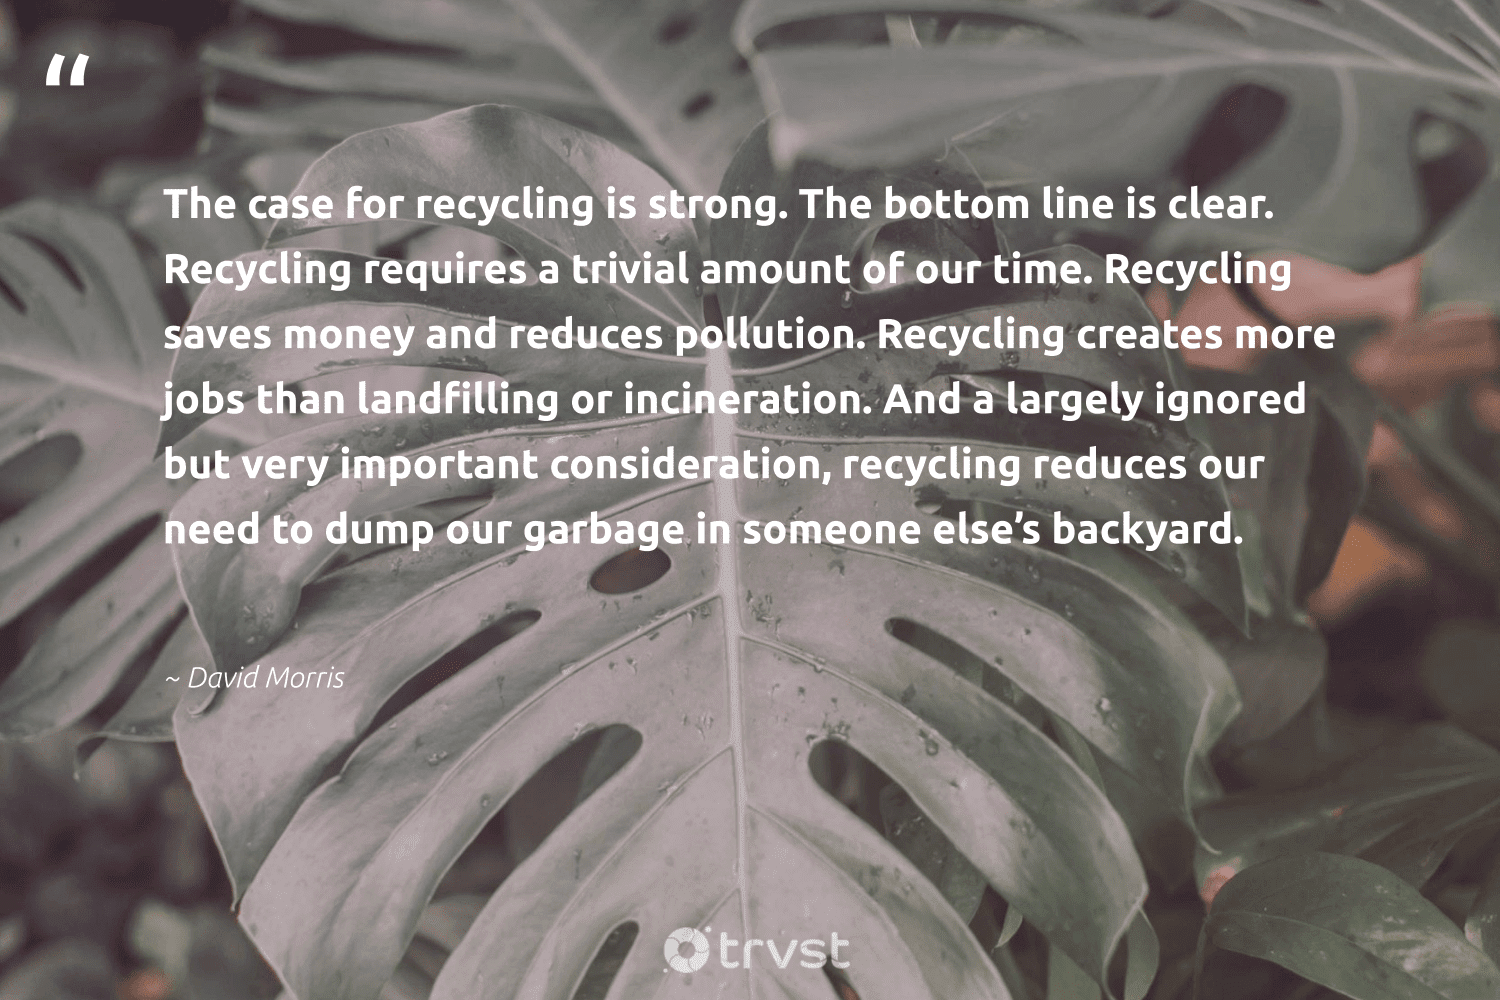 """""""The case for recycling is strong. The bottom line is clear. Recycling requires a trivial amount of our time. Recycling saves money and reduces pollution. Recycling creates more jobs than landfilling or incineration. And a largely ignored but very important consideration, recycling reduces our need to dump our garbage in someone else's backyard. """"  - David Morris #trvst #quotes #recycling #garbage #pollution #recycle #wastefree #ethical #bethechange #repair #sustainability #wastenotwantnot"""